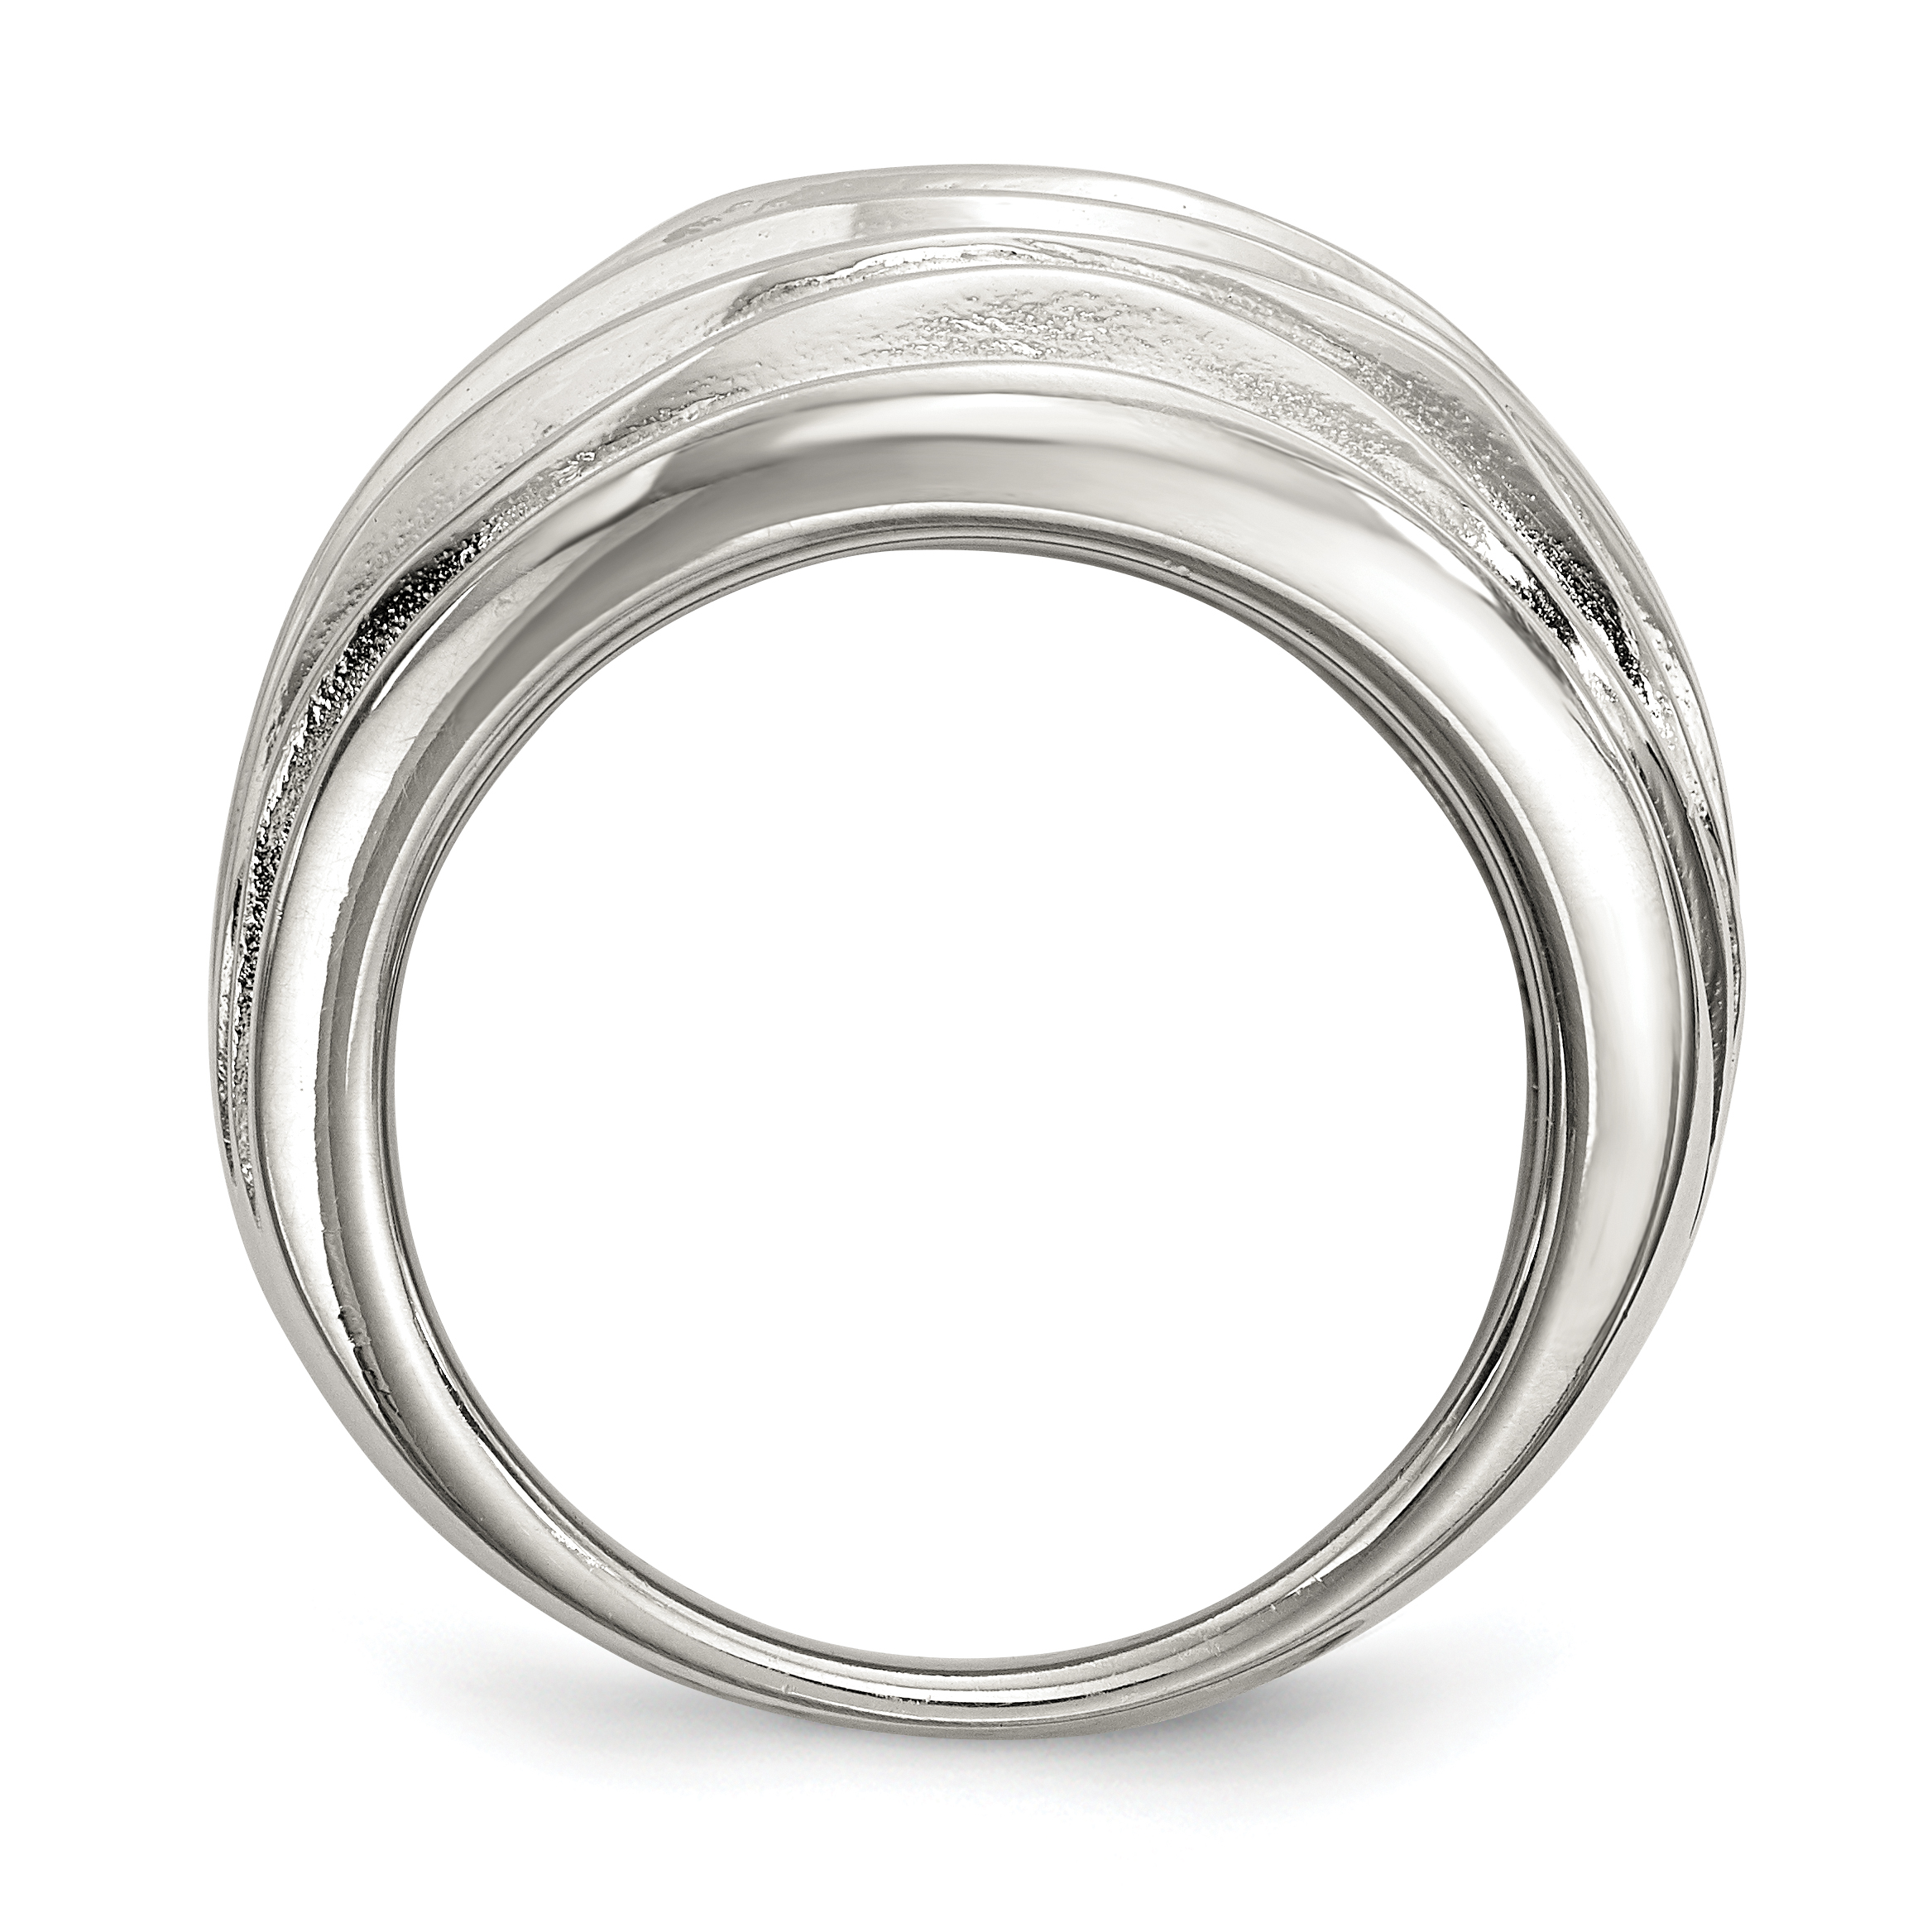 925 Sterling Silver Band Ring Size 6.00 Fine Jewelry Gifts For Women For Her - image 1 of 4